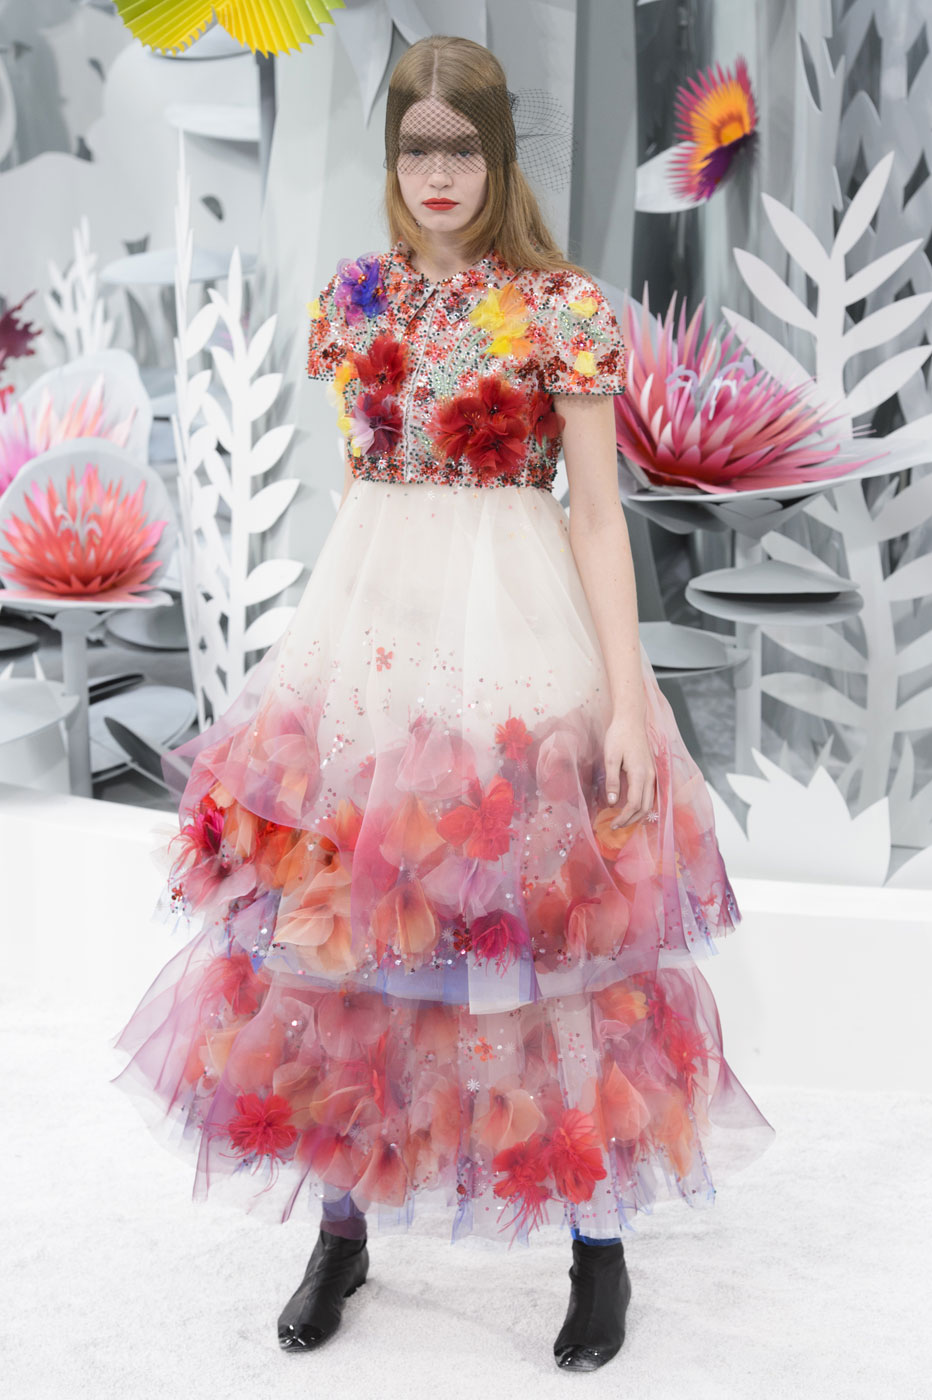 Chanel-fashion-runway-show-haute-couture-paris-spring-summer-2015-the-impression-099